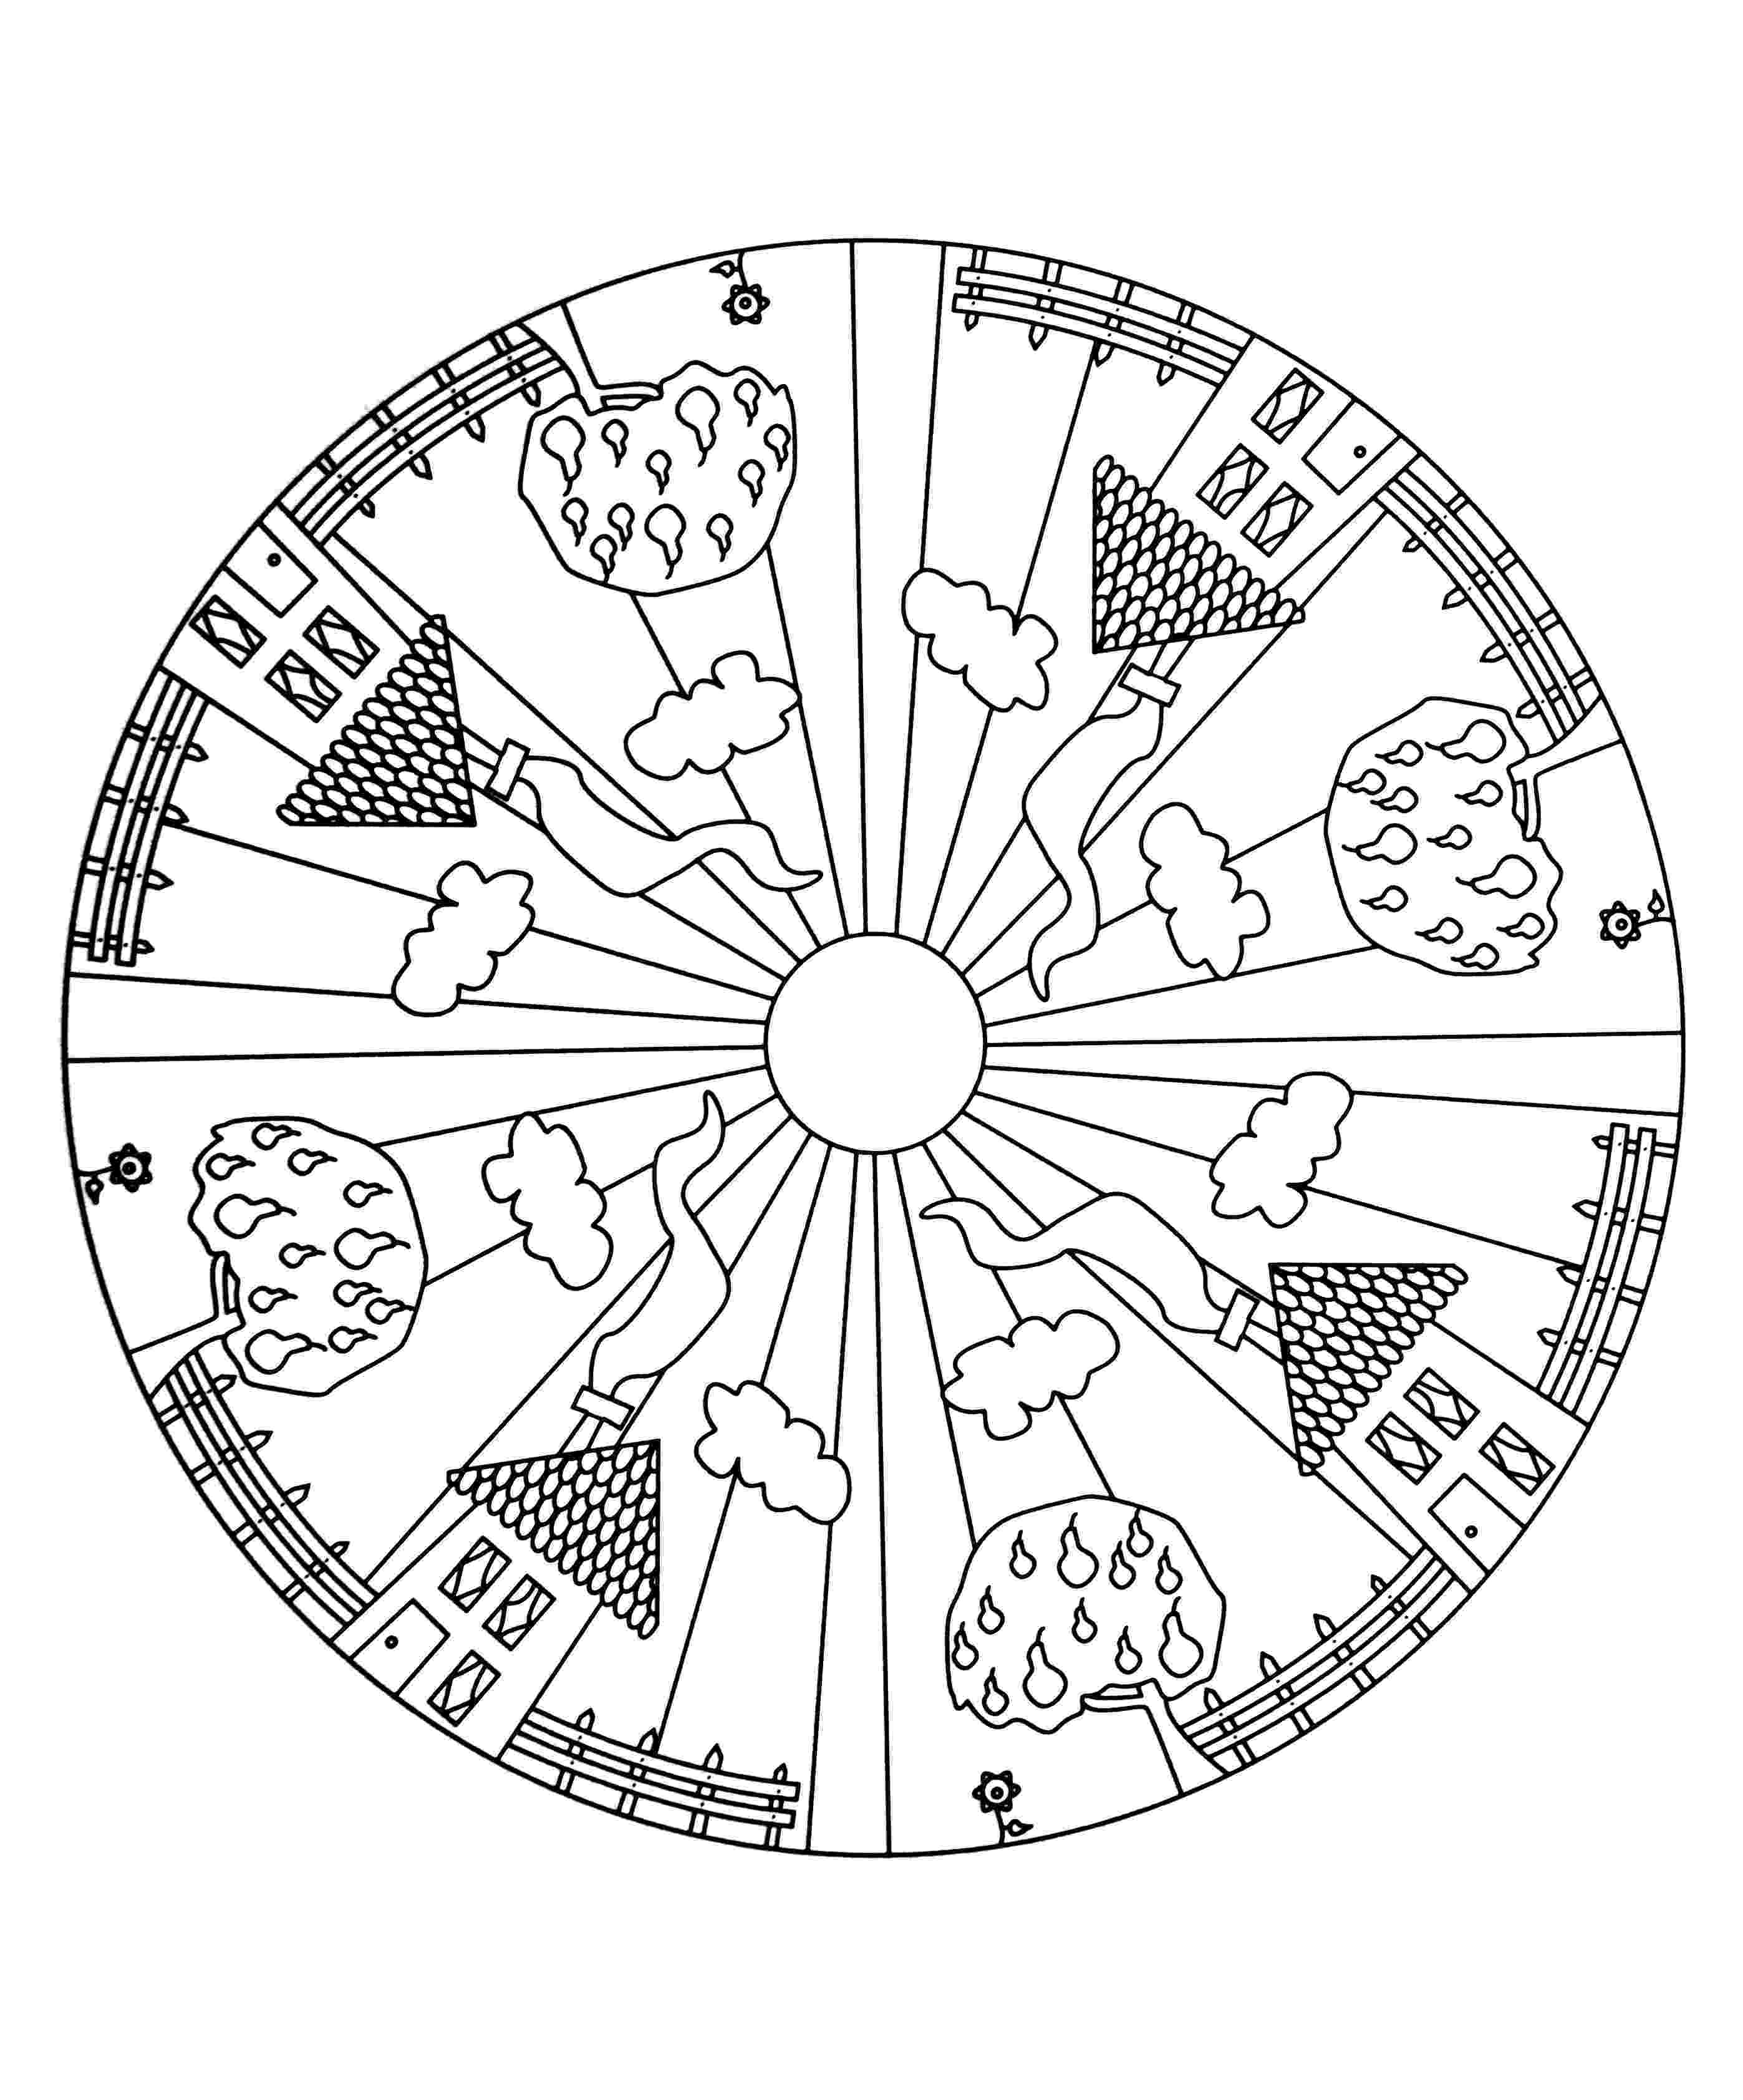 simple mandalas to color mandala coloring pages for kids to download and print for free color to mandalas simple